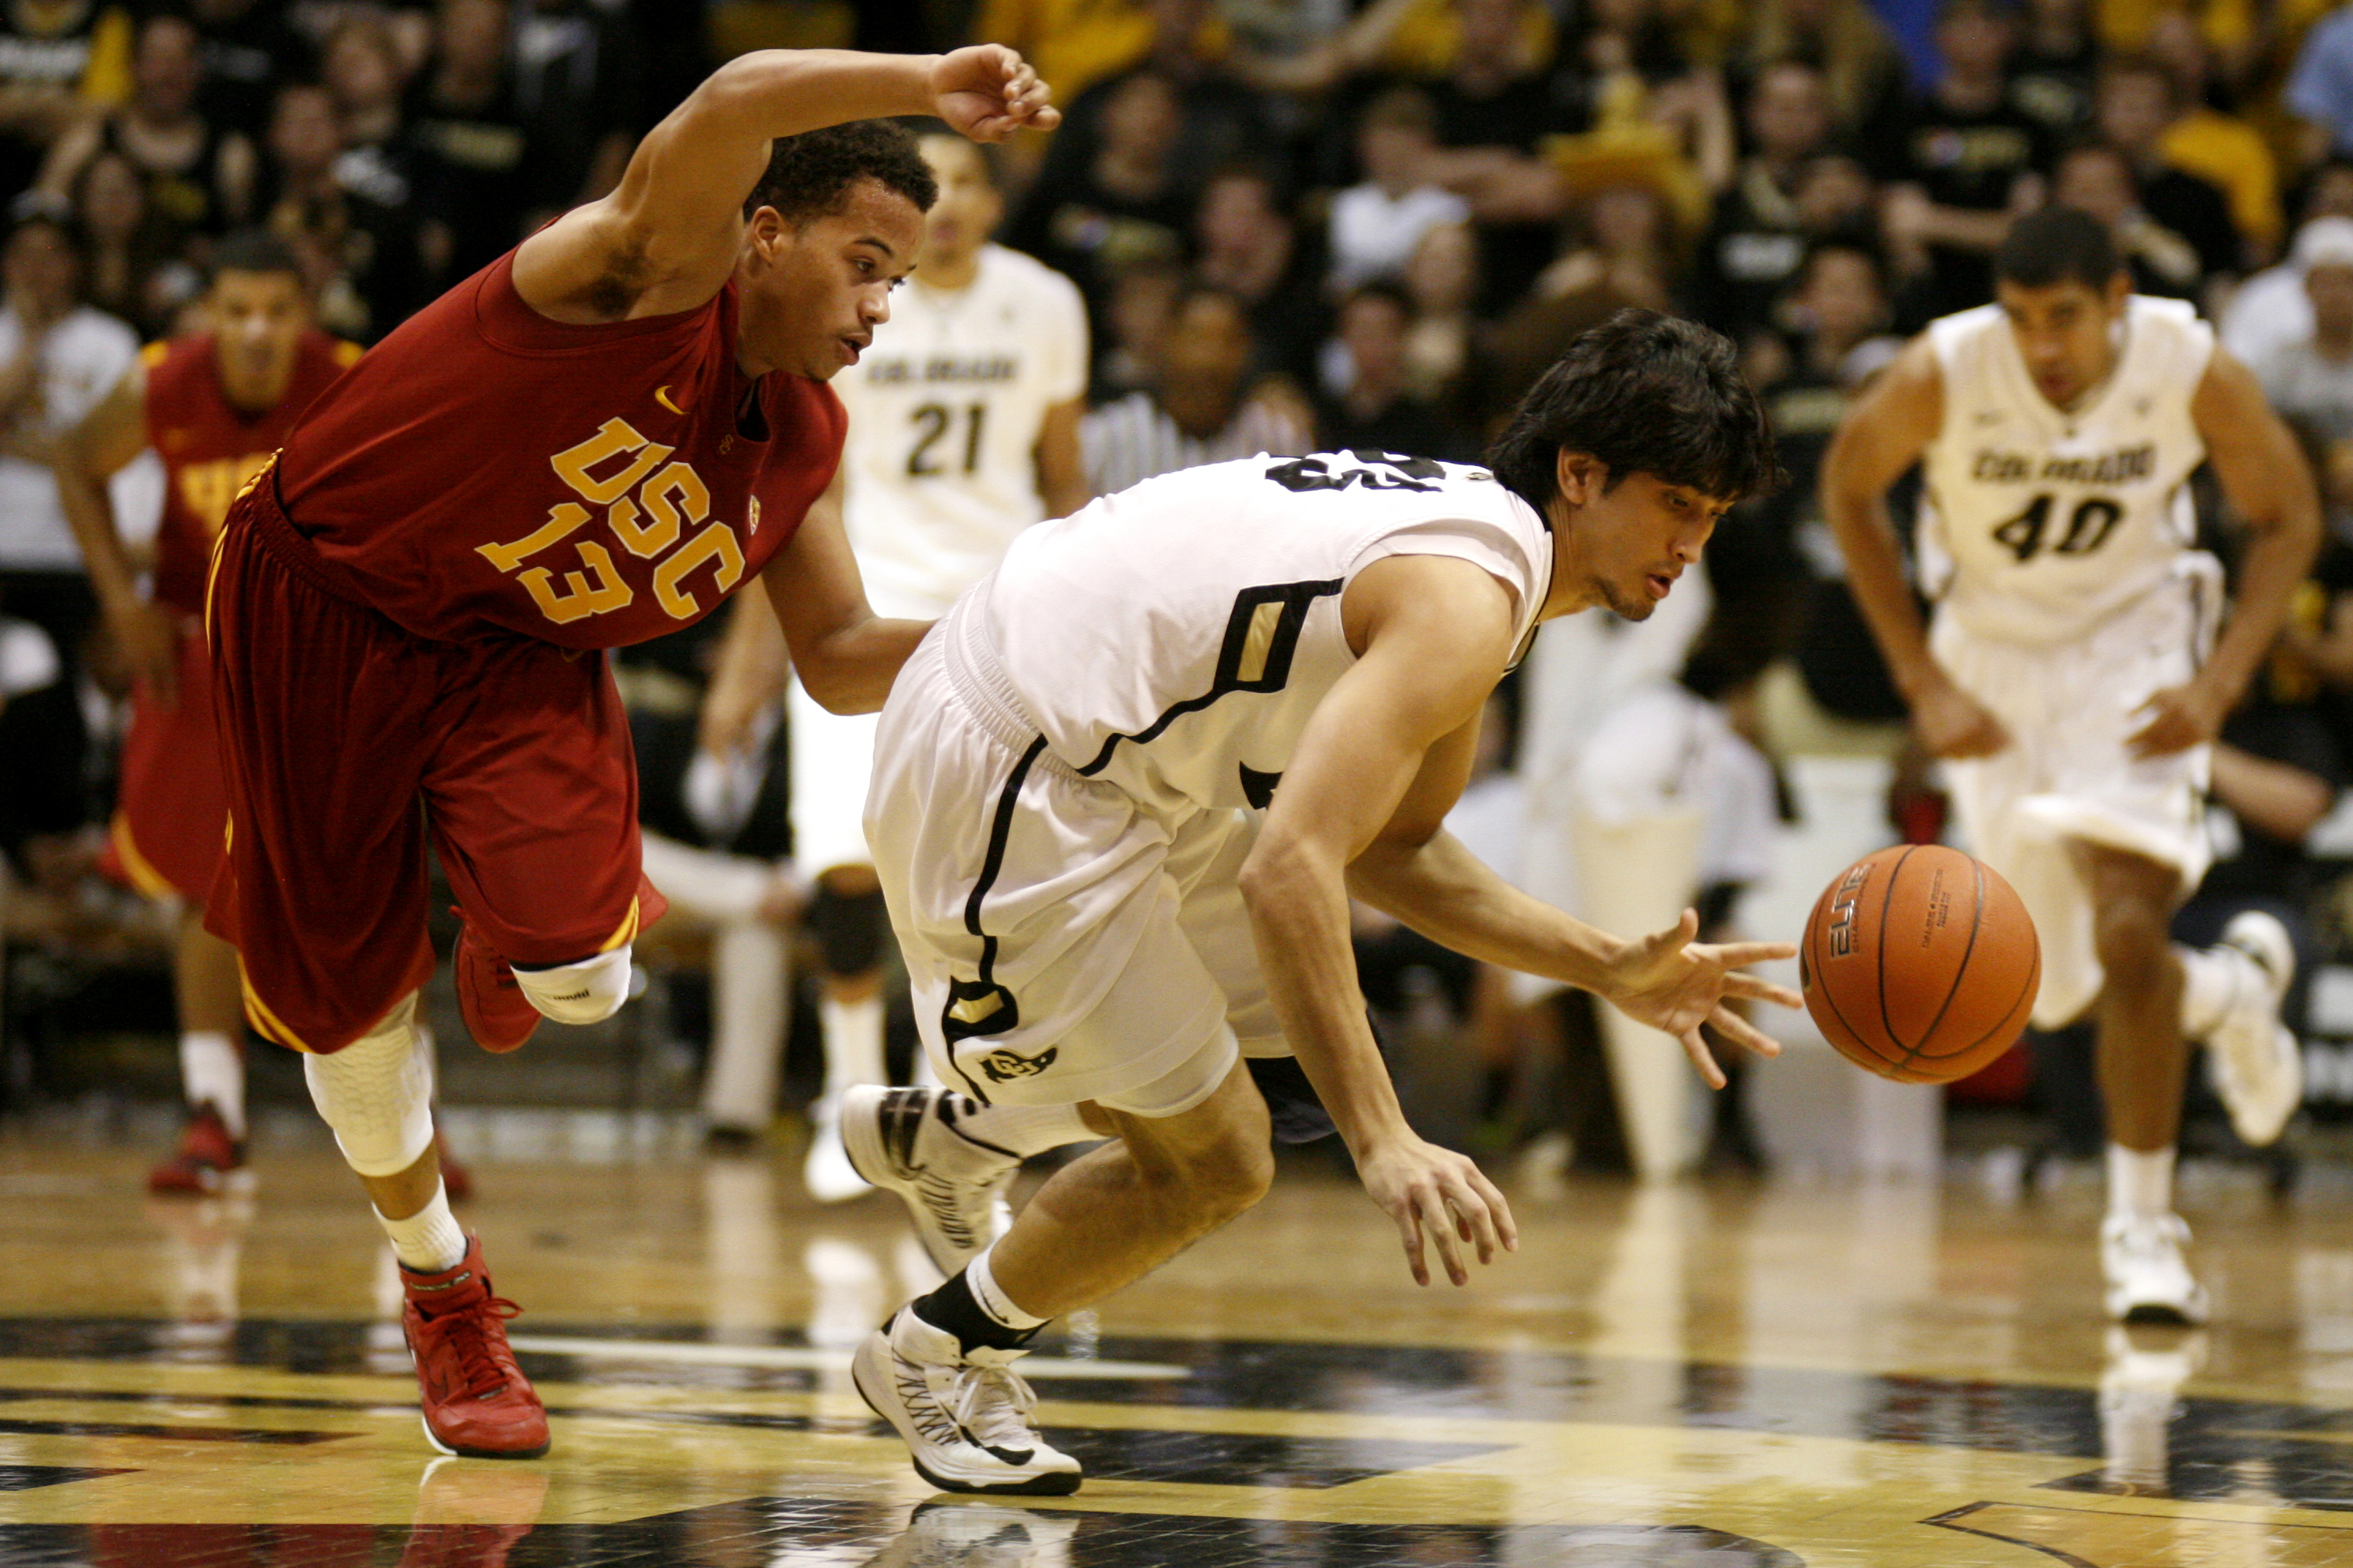 Senior guard Sabatino Chen beats USC's Chass Bryan to a loose ball during a game against USC at the Coors Events Center on Thursday, Jan. 10, 2013. (Kai Casey/CU Independent)